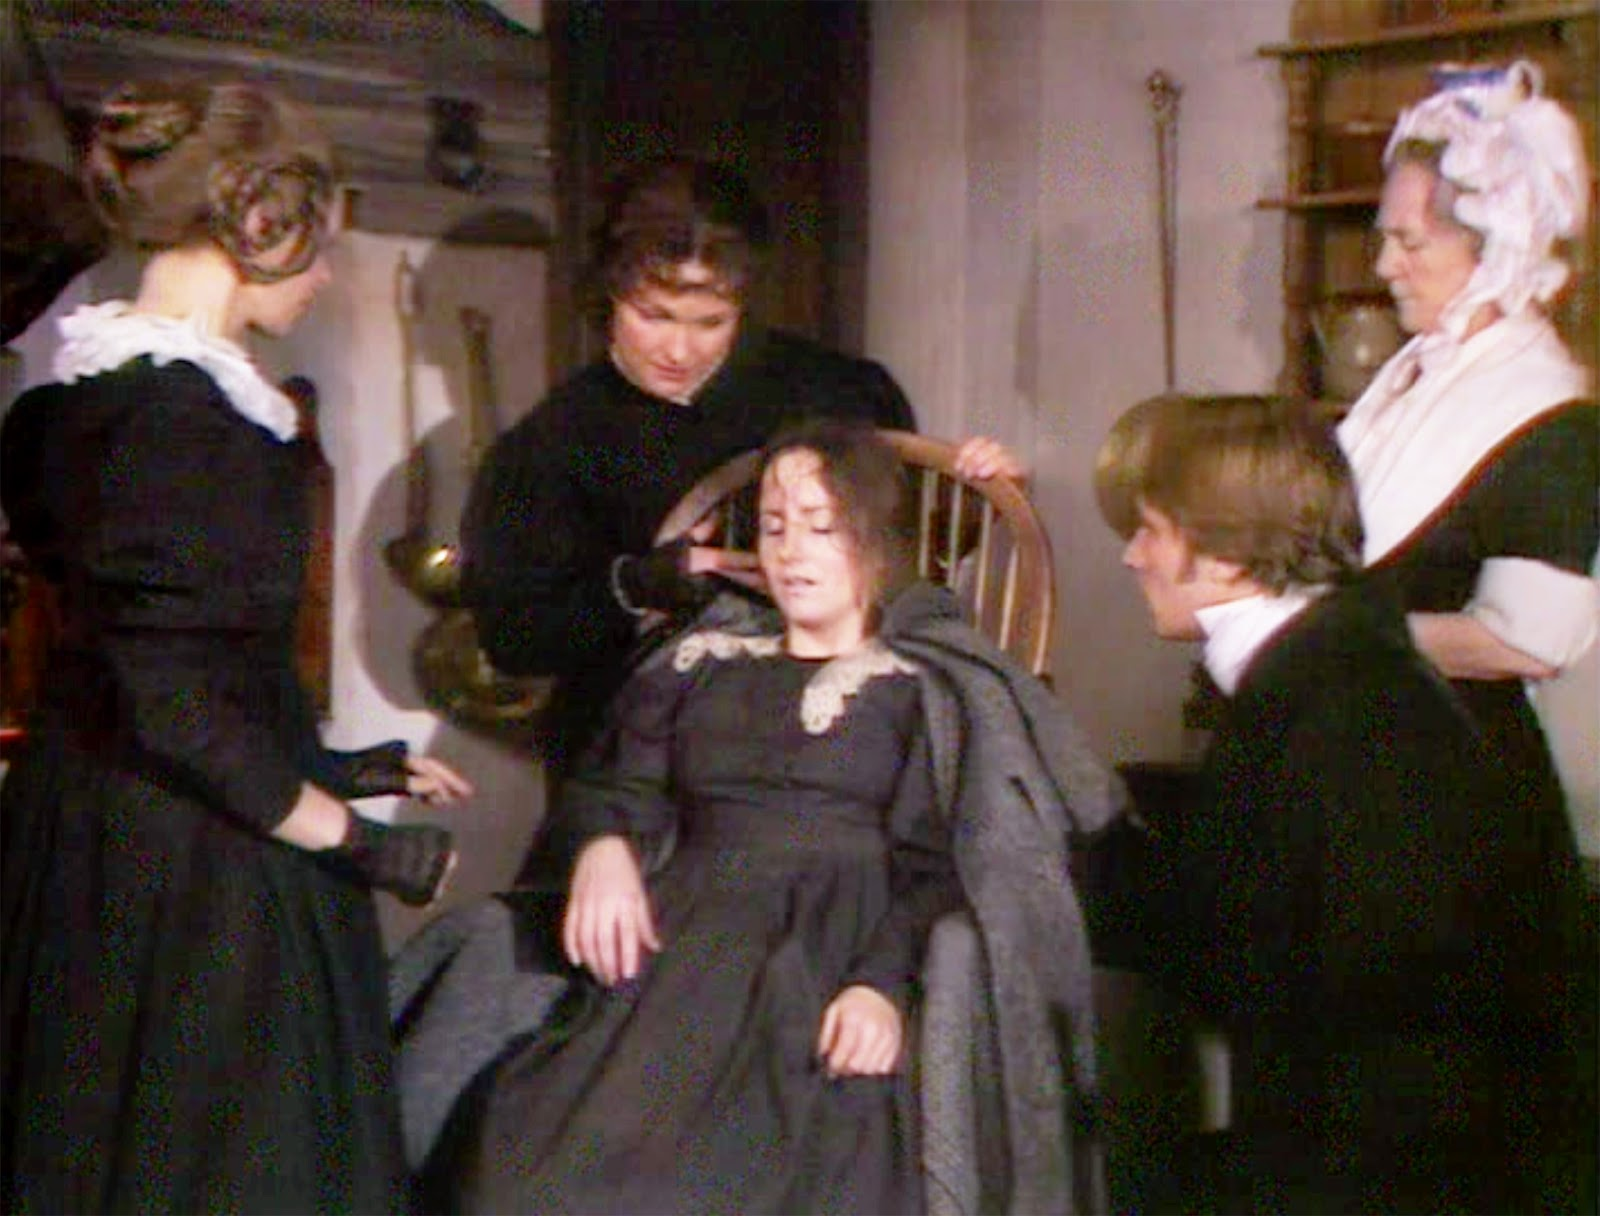 jane eyre st john Get an answer for 'compare and contrast between mr rochester and st john from jane eyre ' and find homework help for other jane eyre questions at enotes.